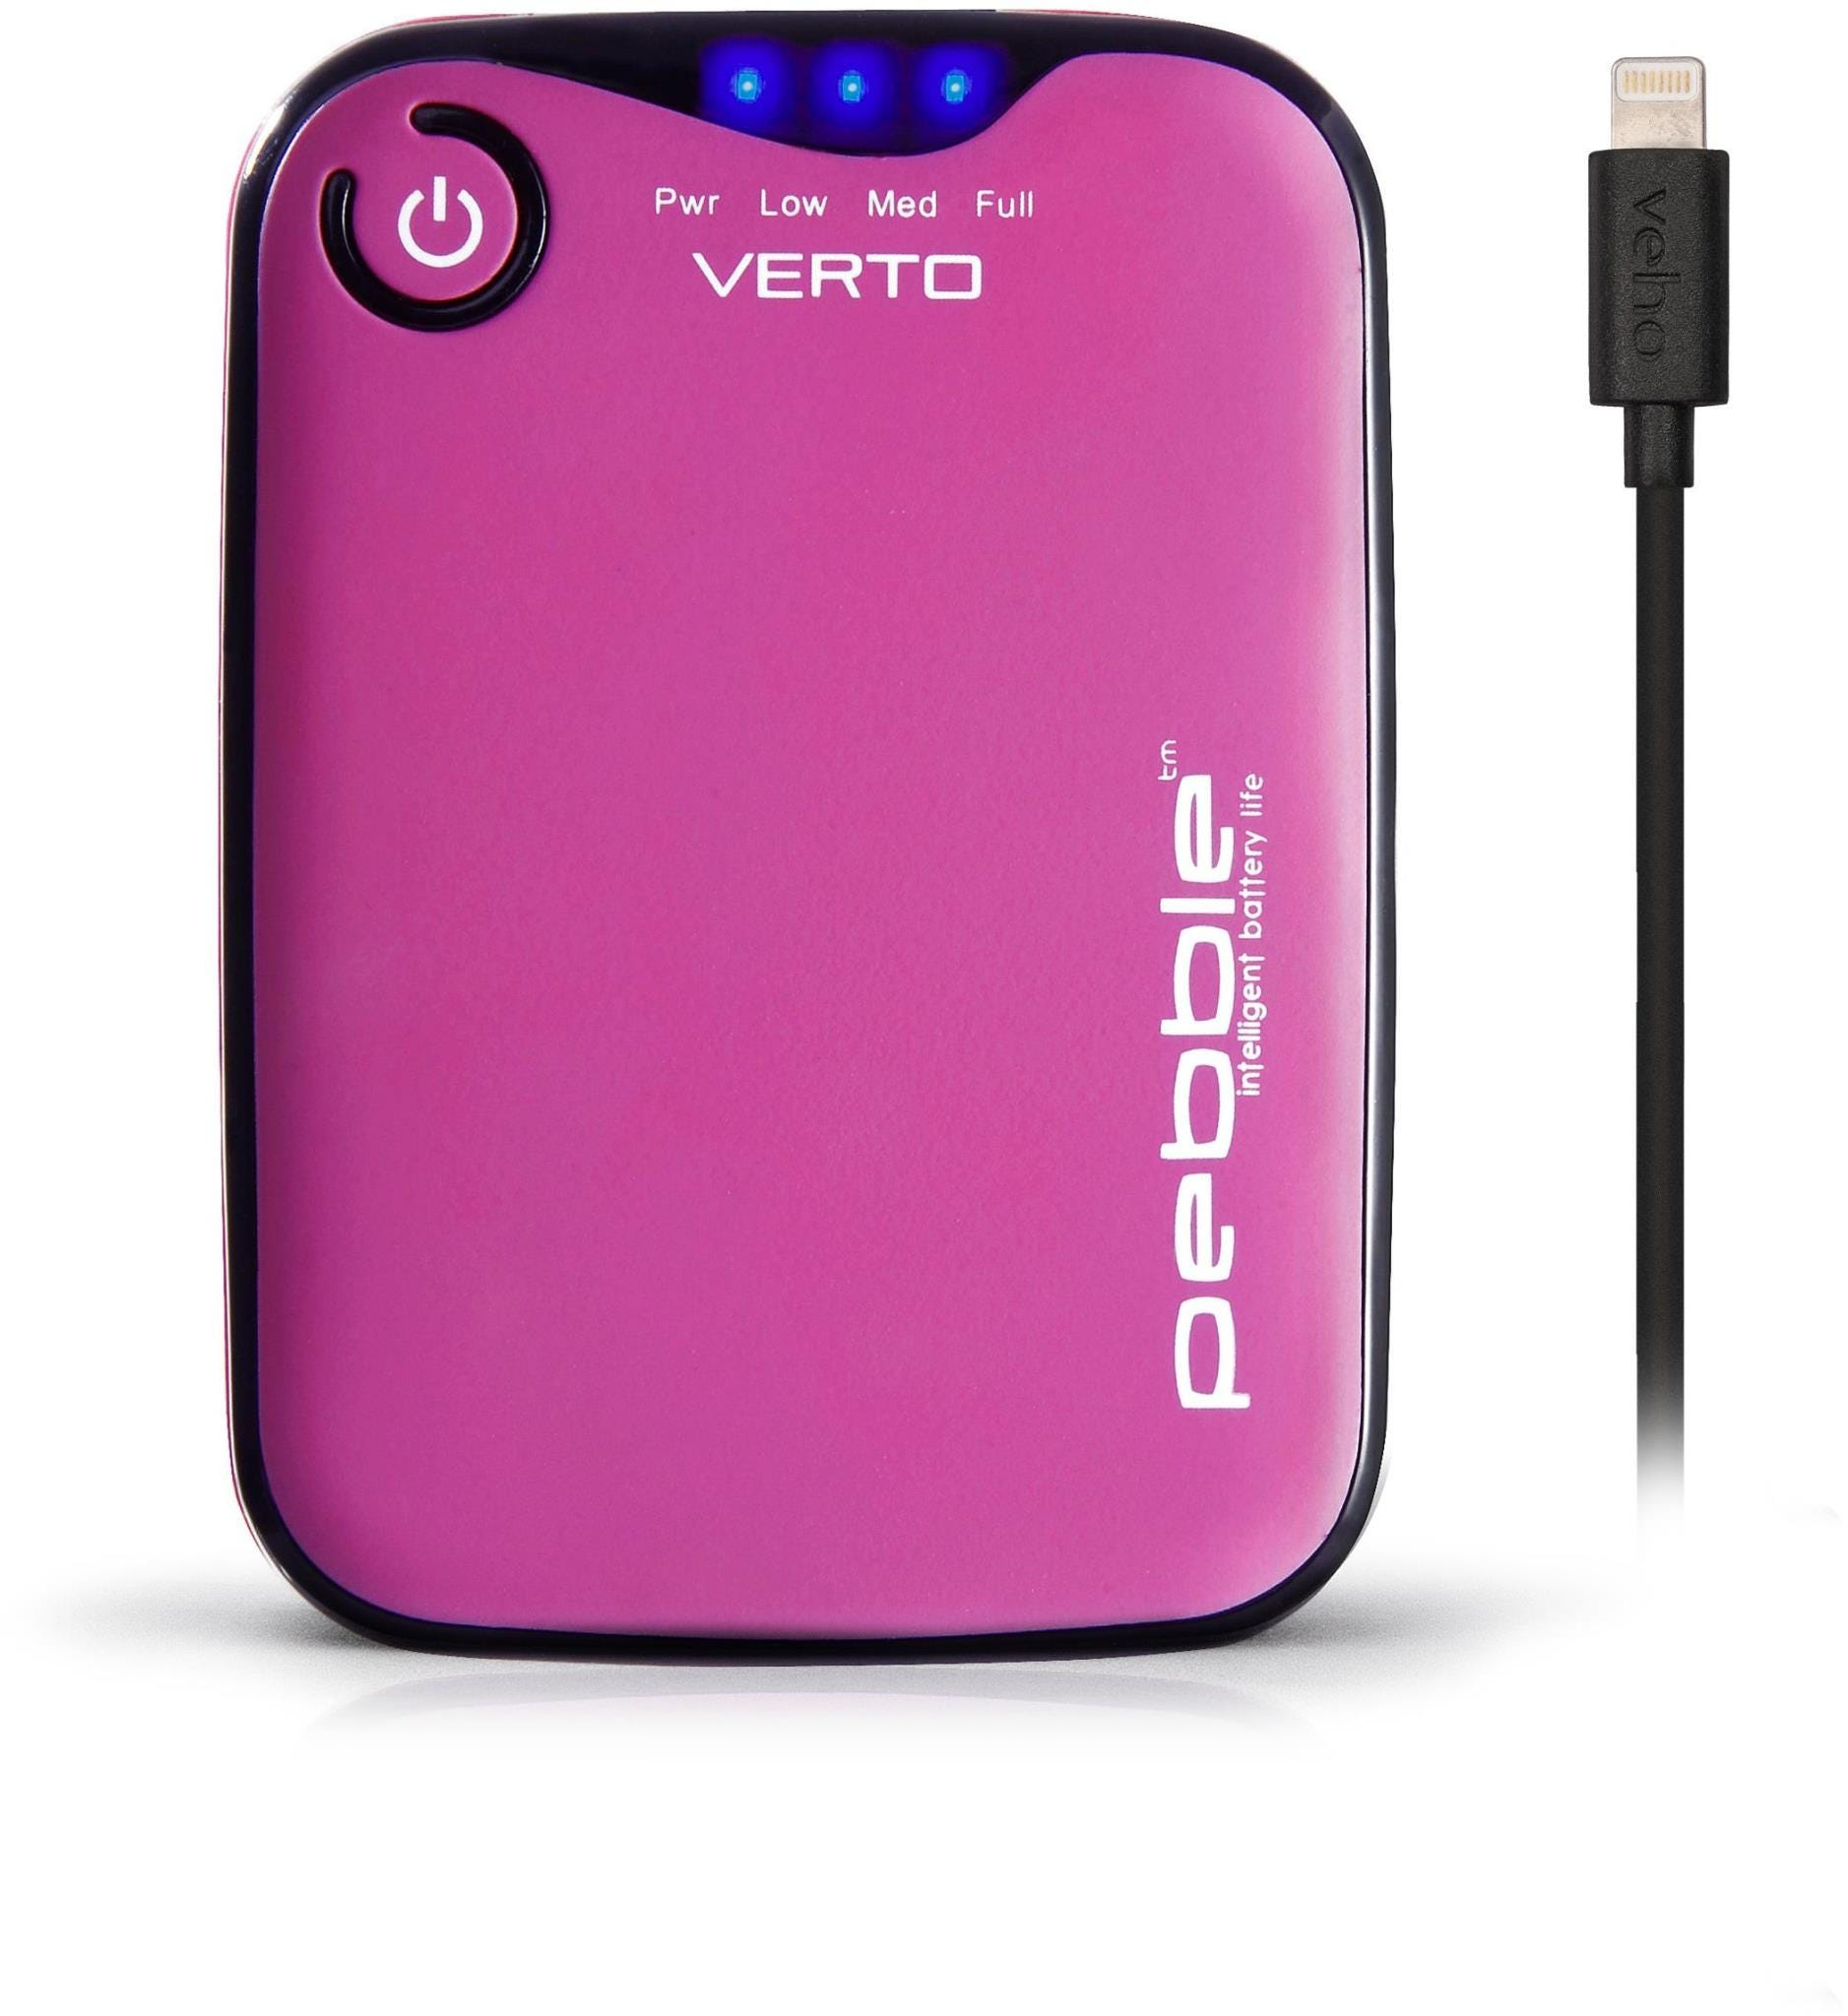 Veho Pebble Verto Pro 3700 mAh Portable Power Bank with Lightning Cable - Pink